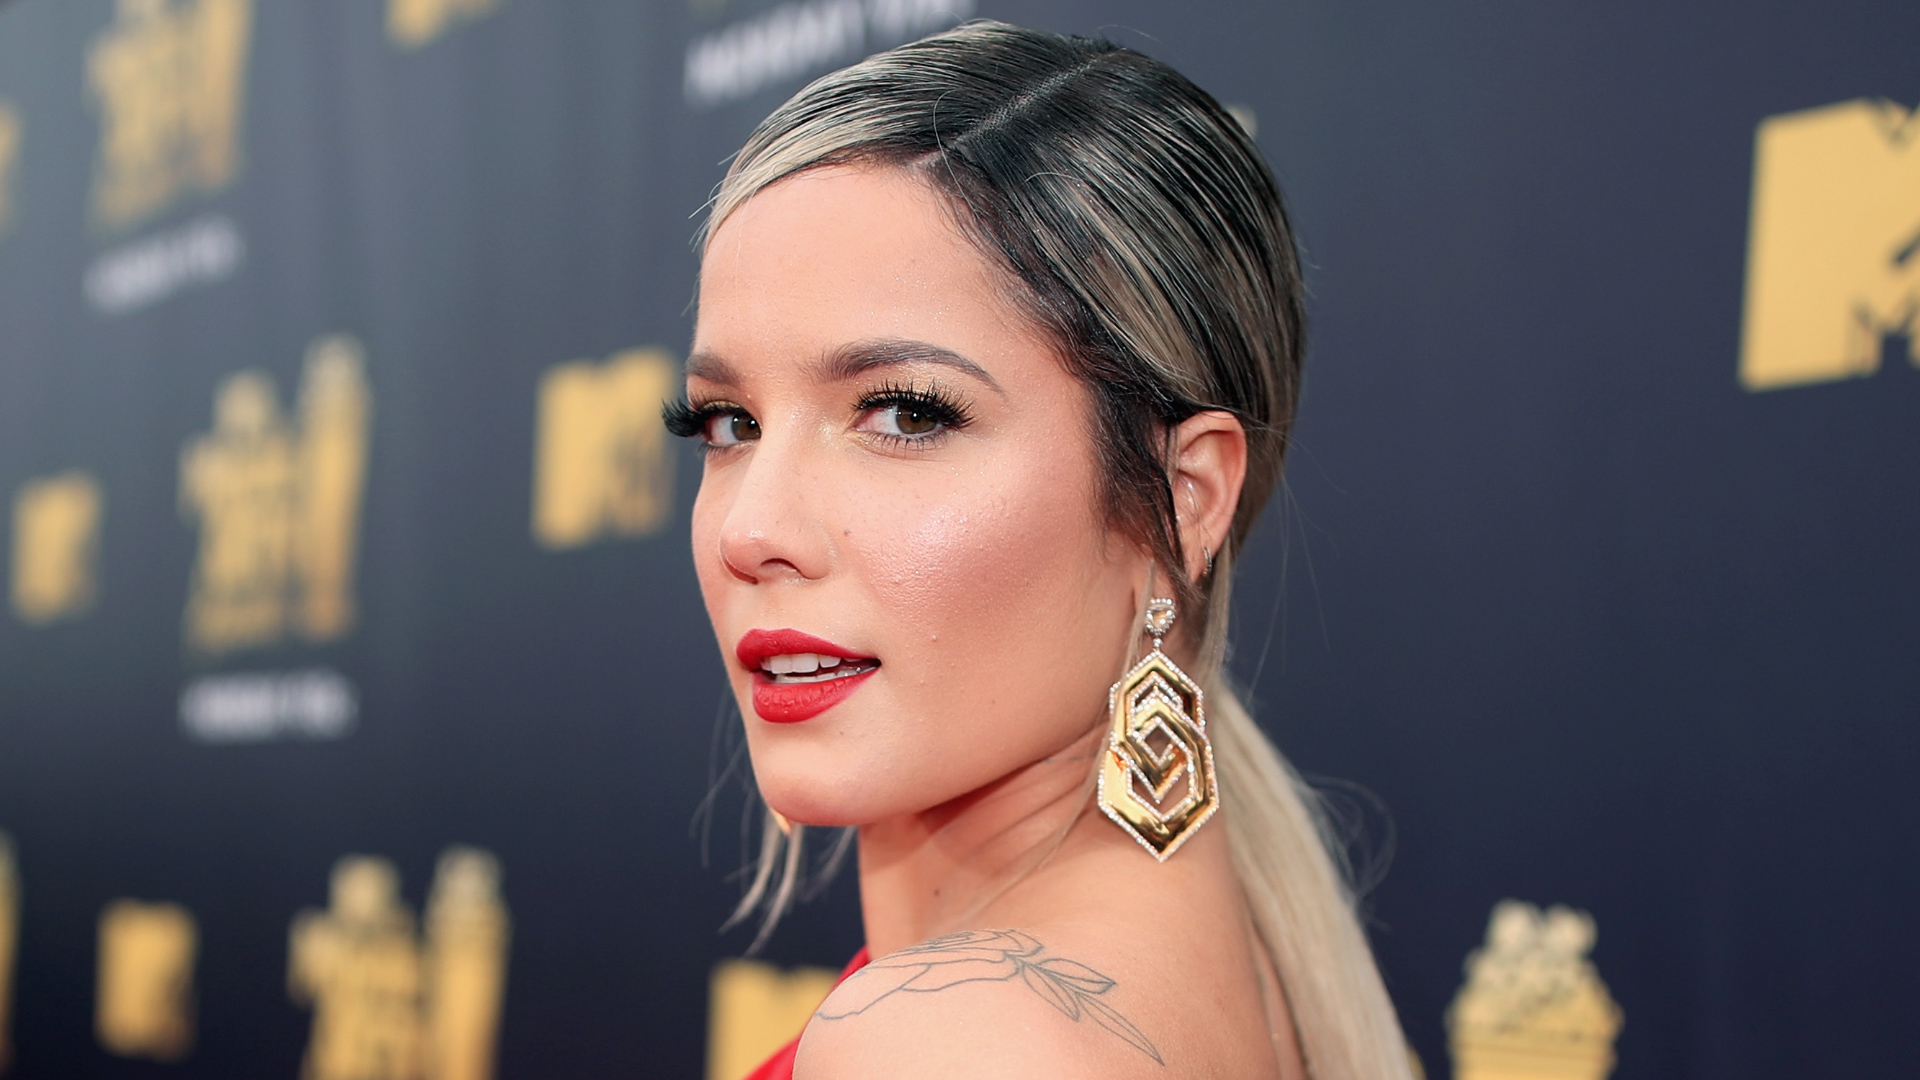 Halsey Reveals She's Expecting First Child With Surprise Announcement